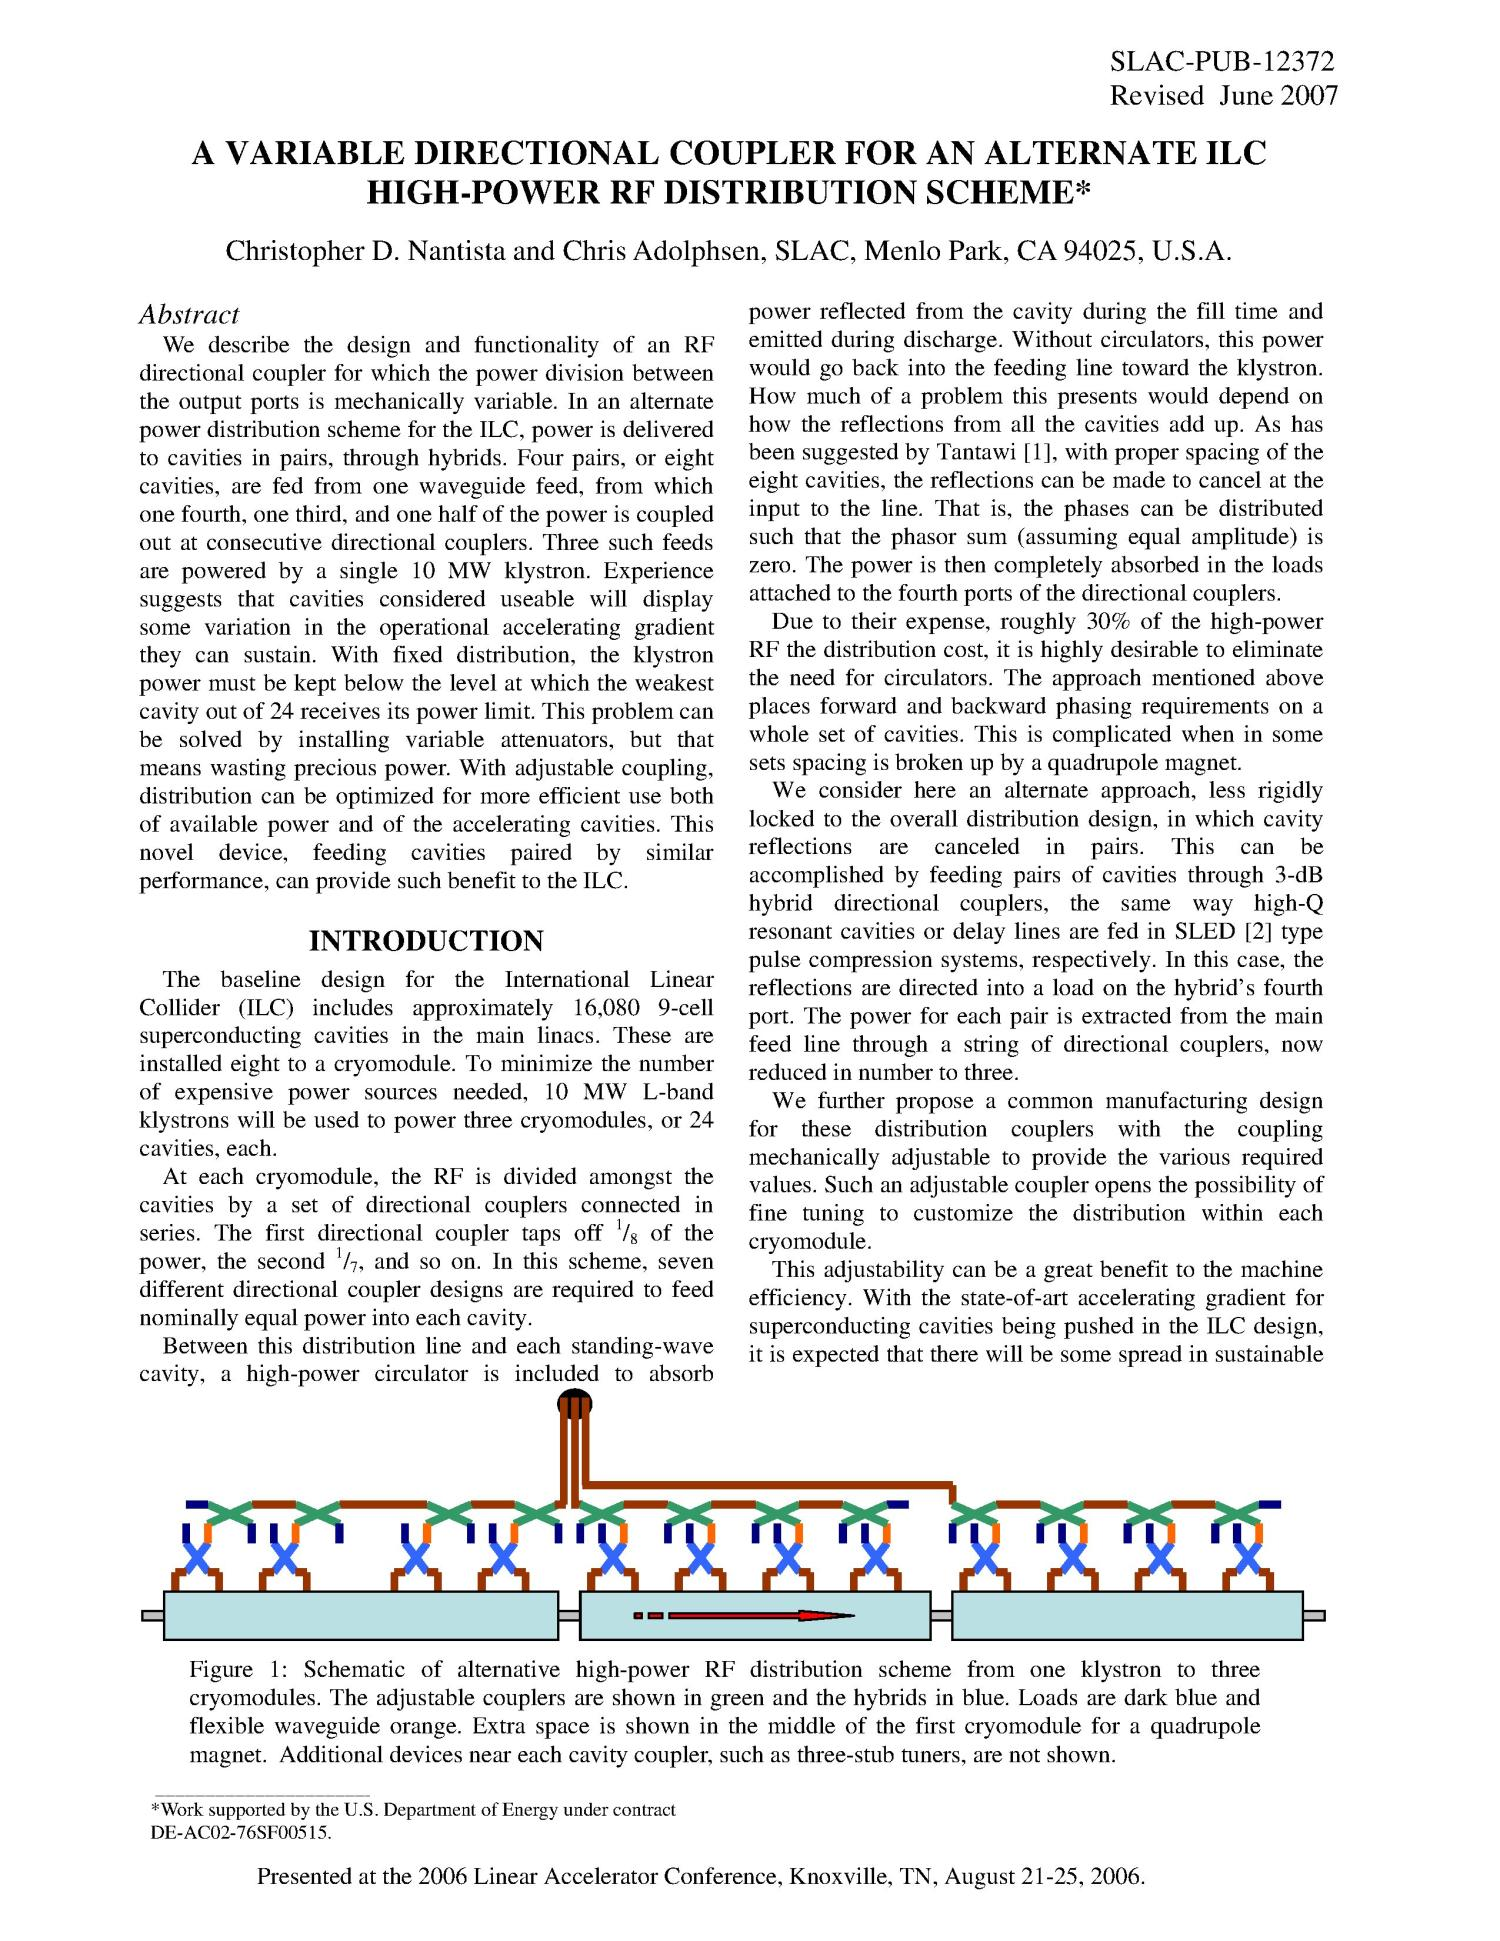 A Variable Directional Coupler For An Alternate Ilc High Power Rf Schematic Distribution Scheme Digital Library